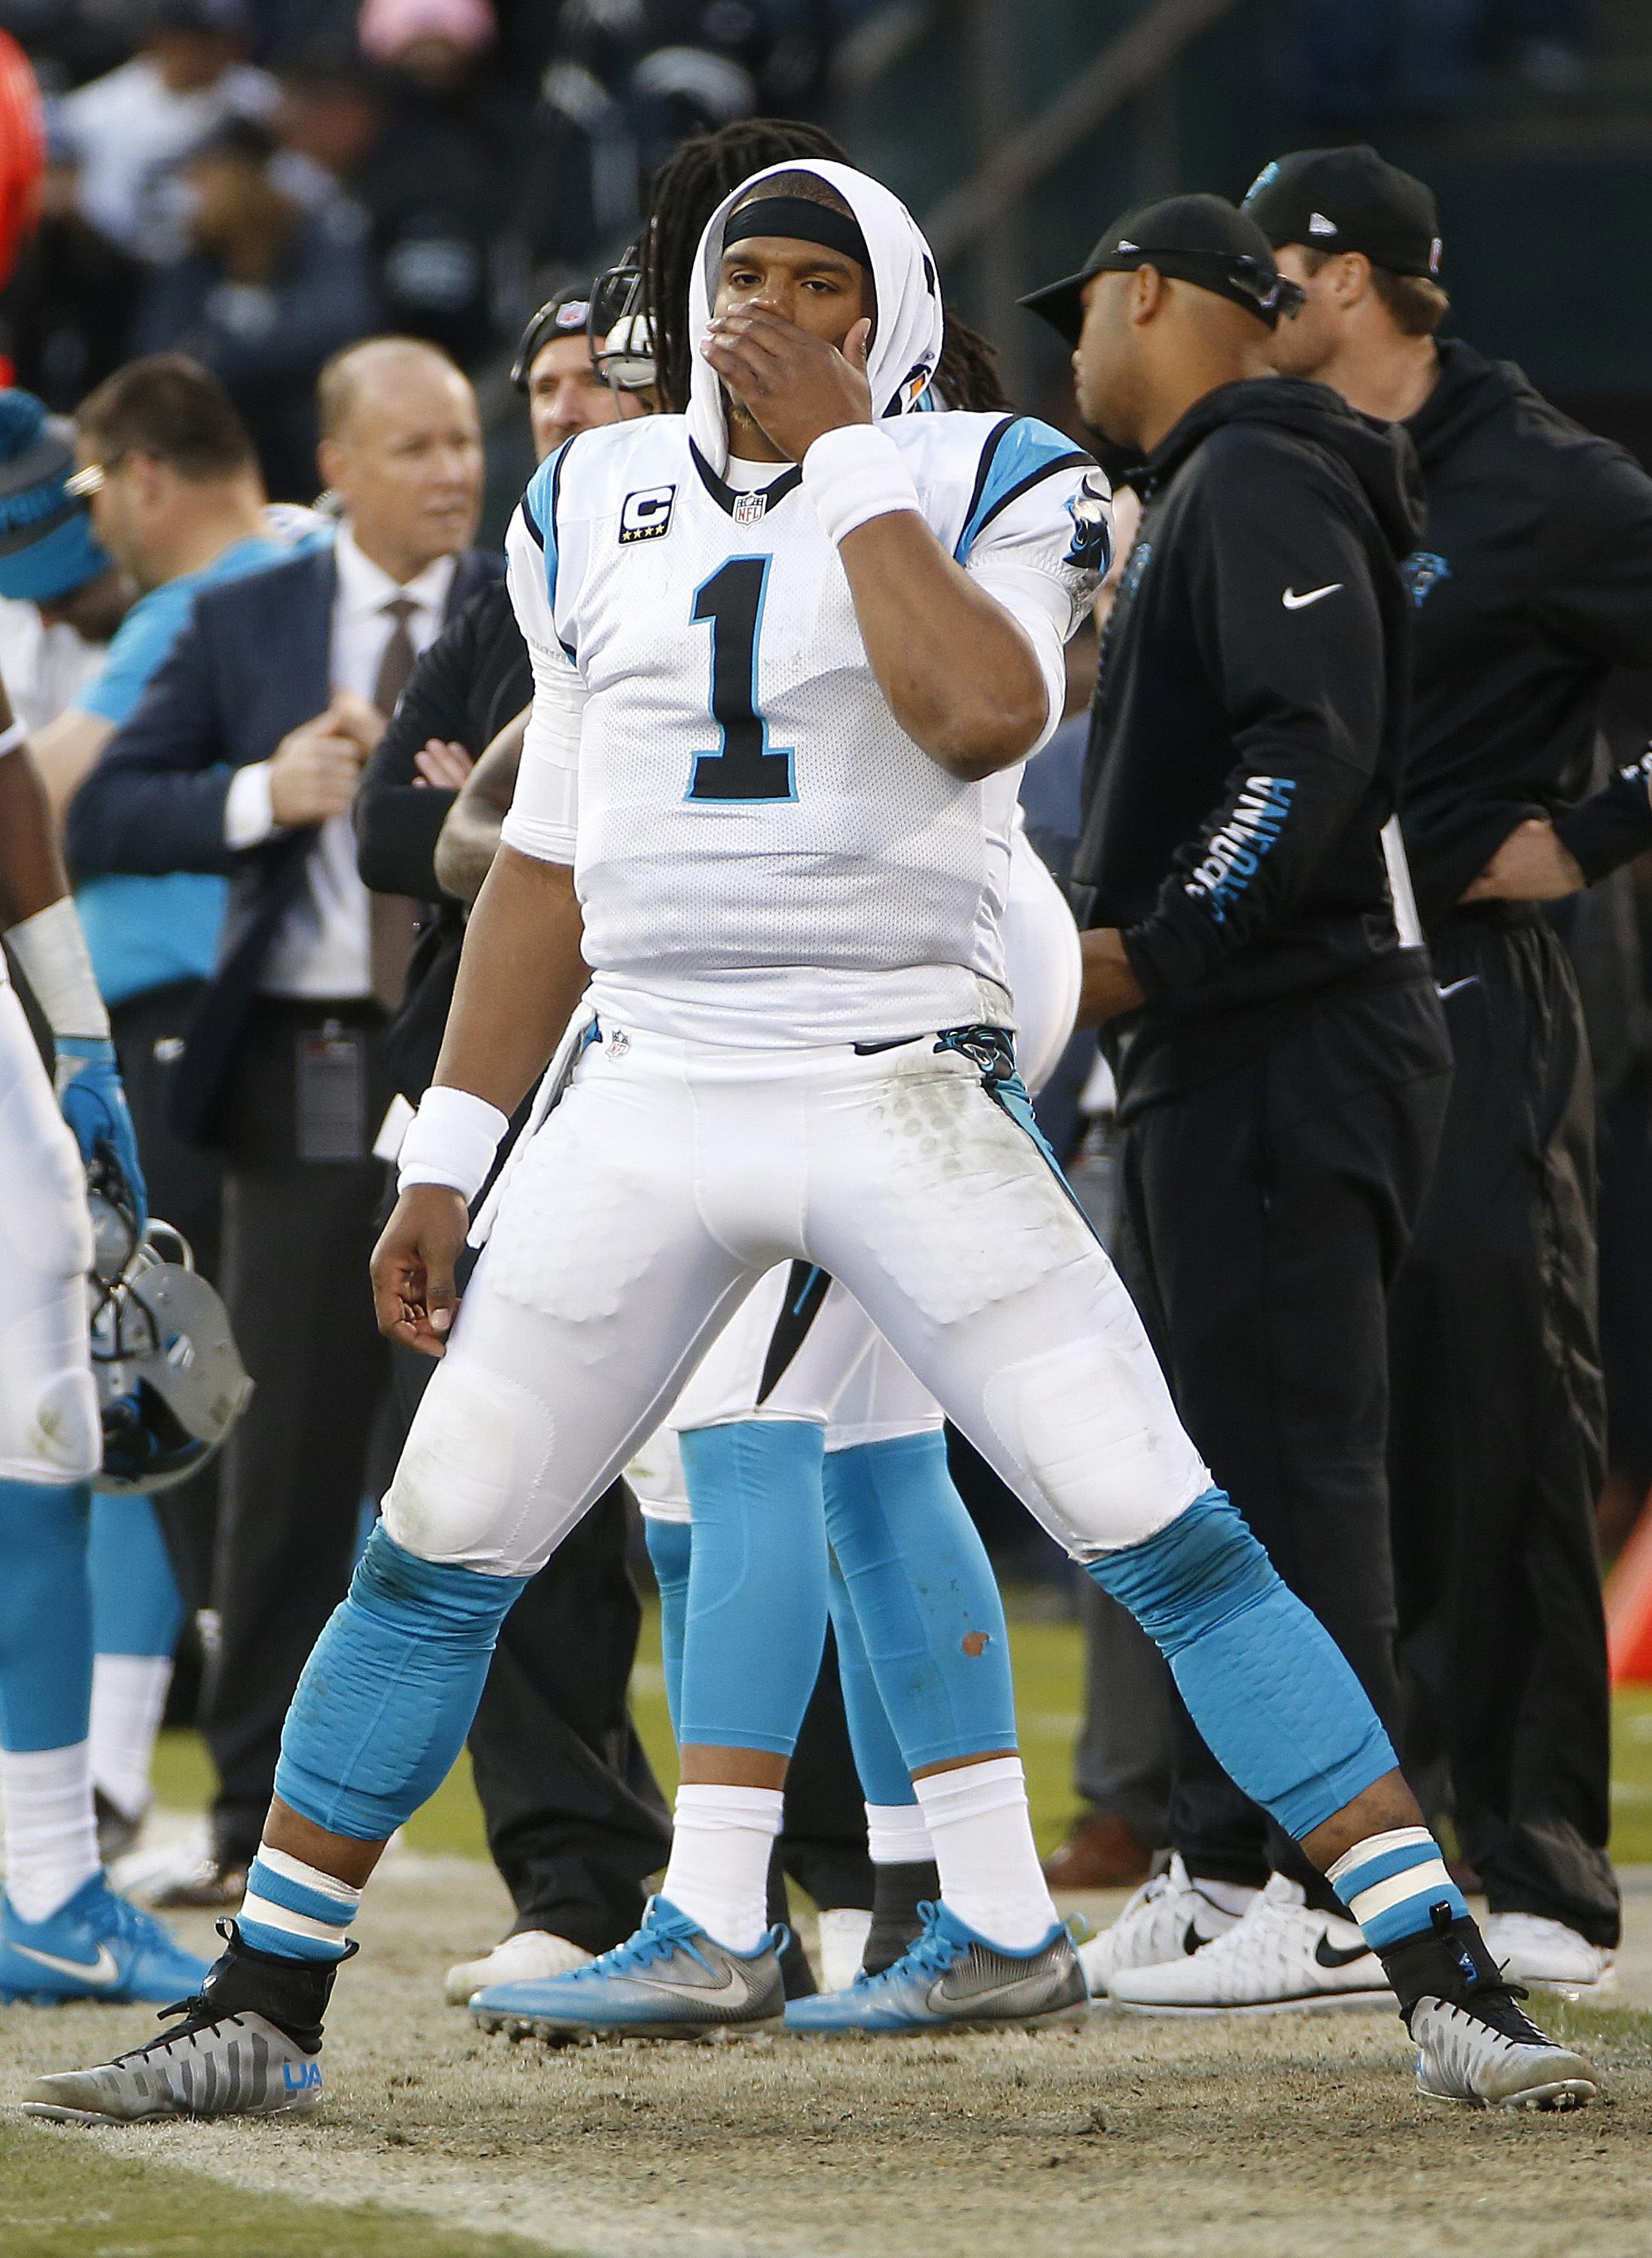 Carolina Panthers quarterback Cam Newton (1) watches on the sideline during the second half of an NFL football game against the Oakland Raiders in Oakland, Calif., Sunday, Nov. 27, 2016. The Raiders won 35-32. (AP Photo/Tony Avelar)